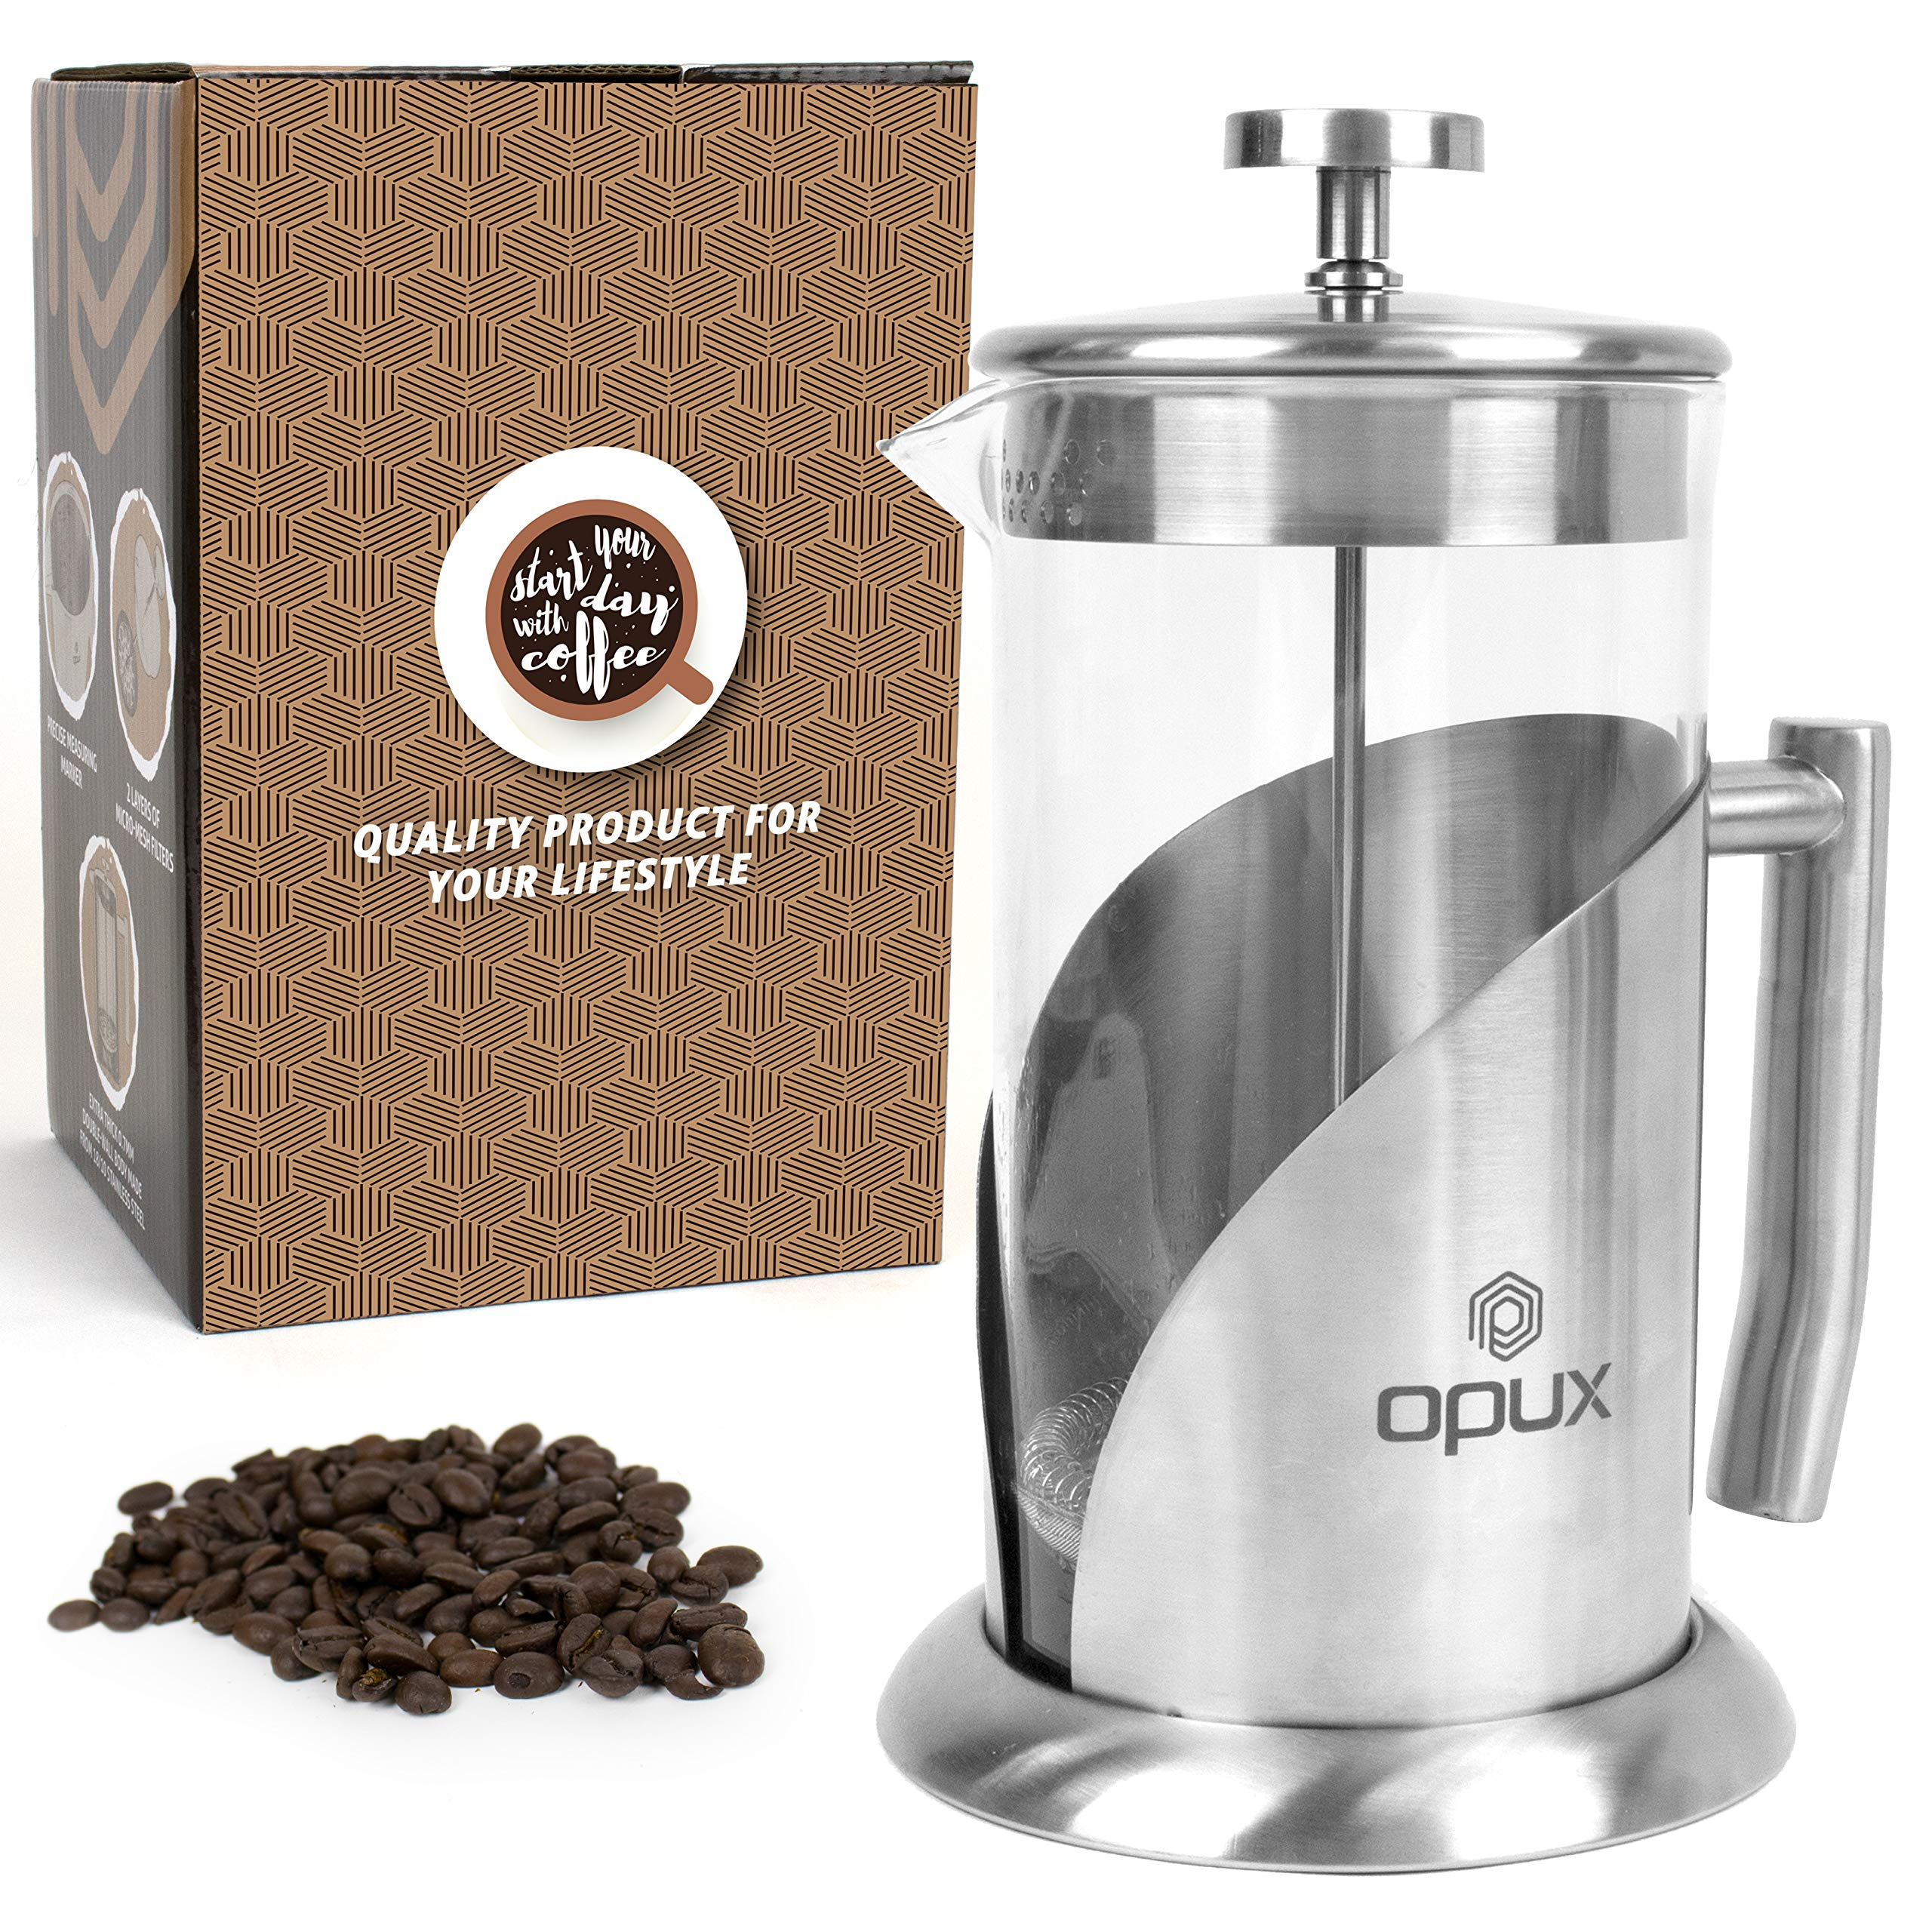 OPUX Premium Insulated French Press with 4 Layer Filtration System | 4 Cup Stainless Steel Coffee Press for Pour Over, Espresso | Borosilicate Glass (34 fl oz)